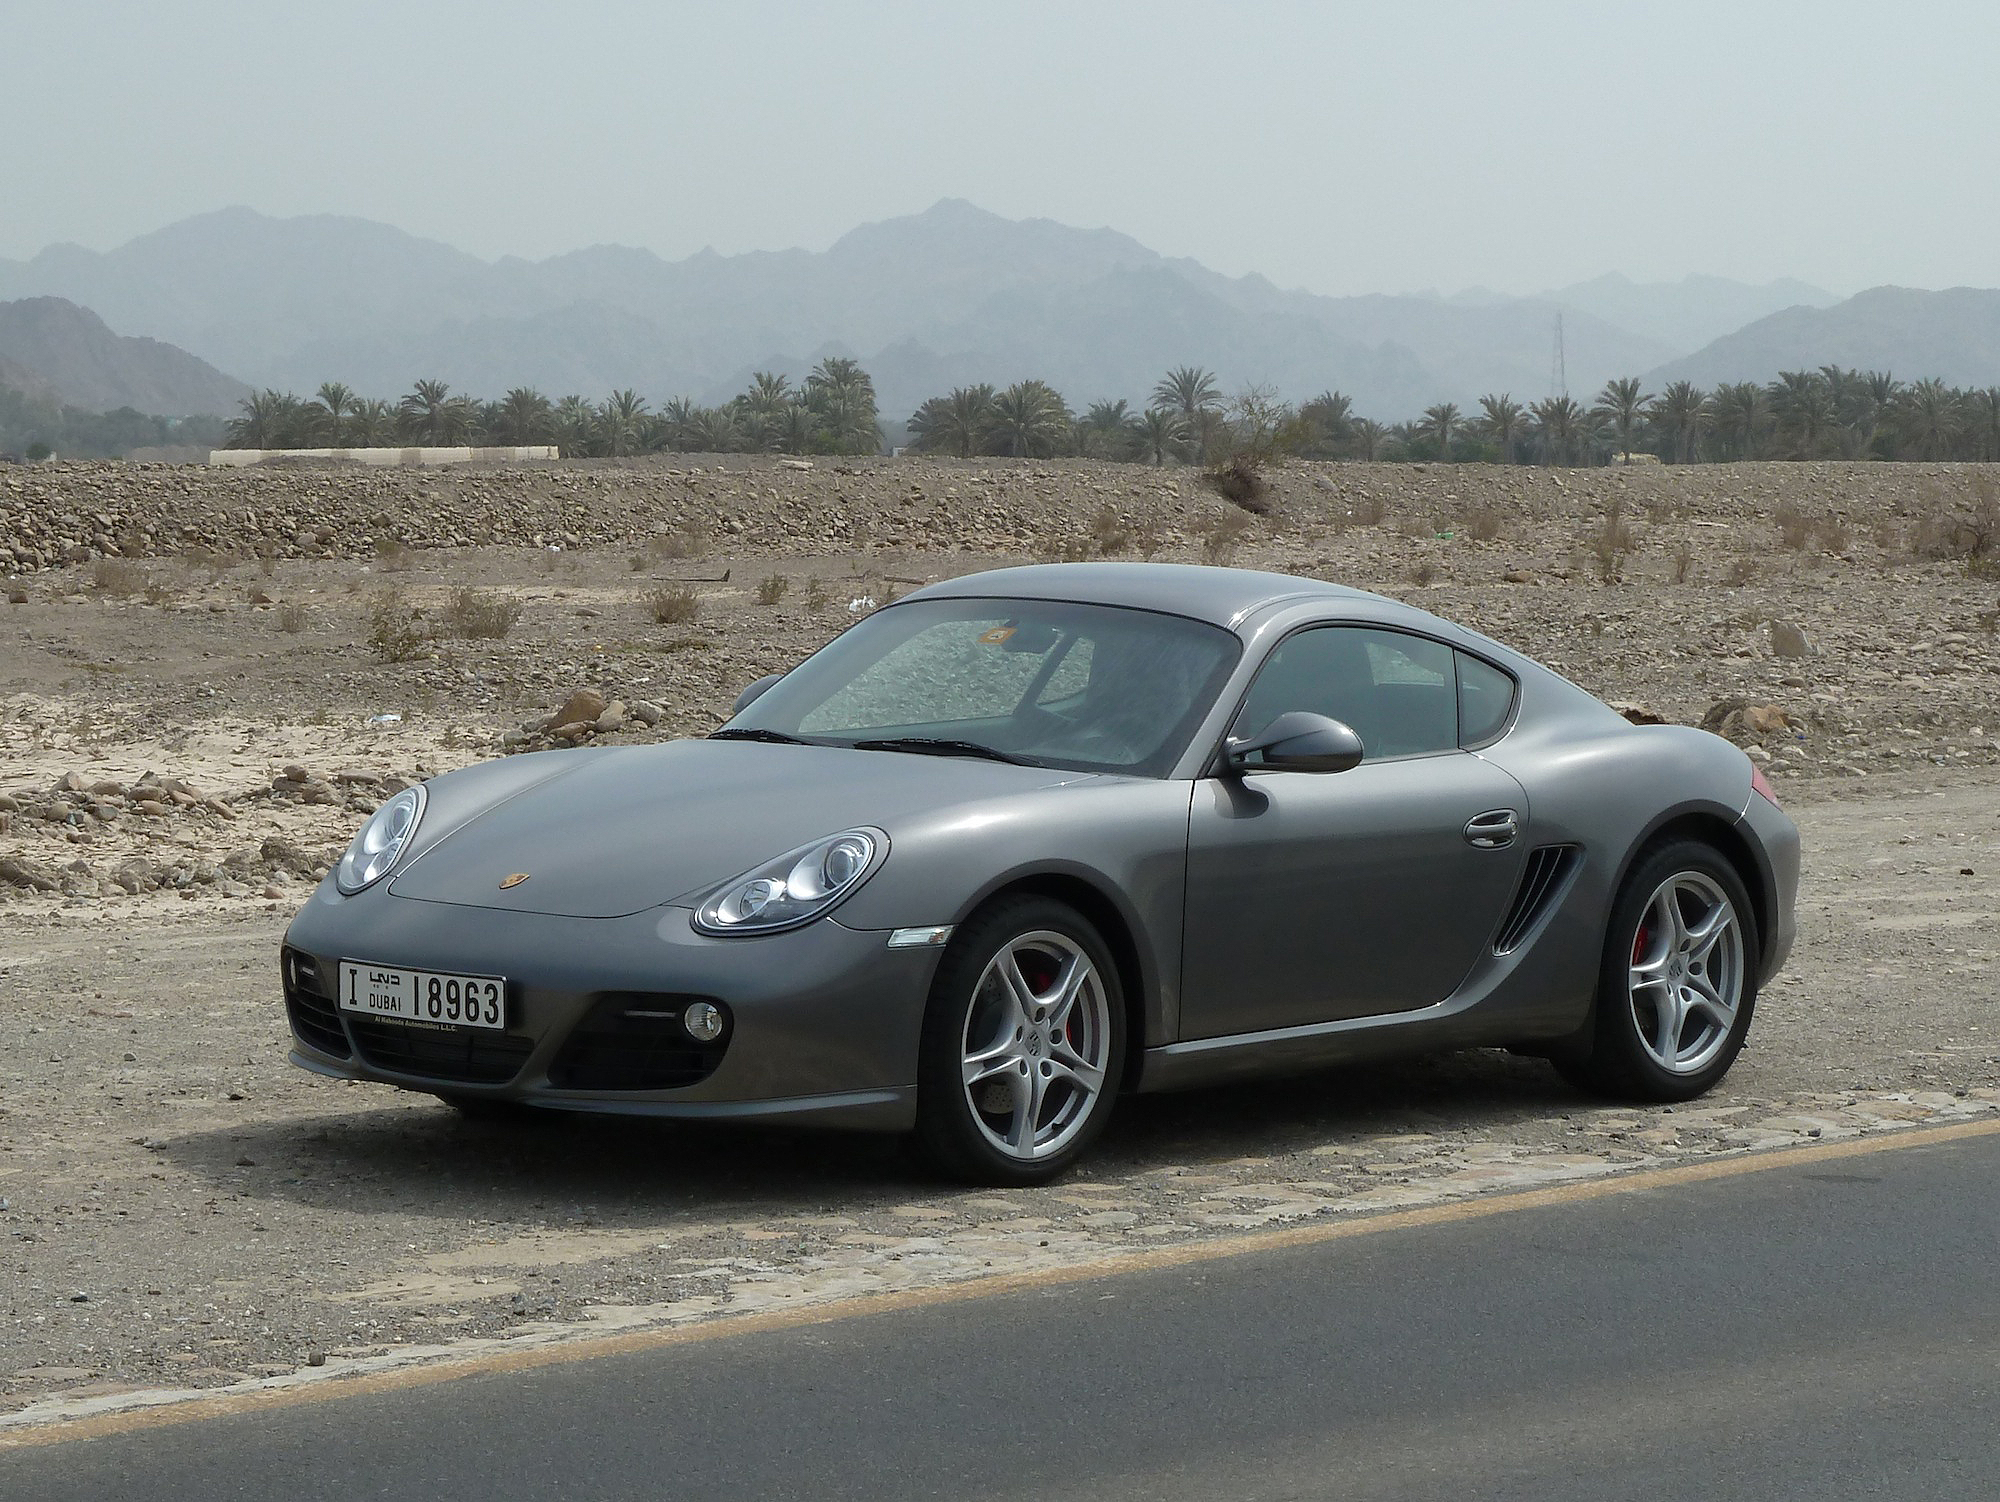 Owner S Review 2012 Porsche Cayman S Motoring Middle